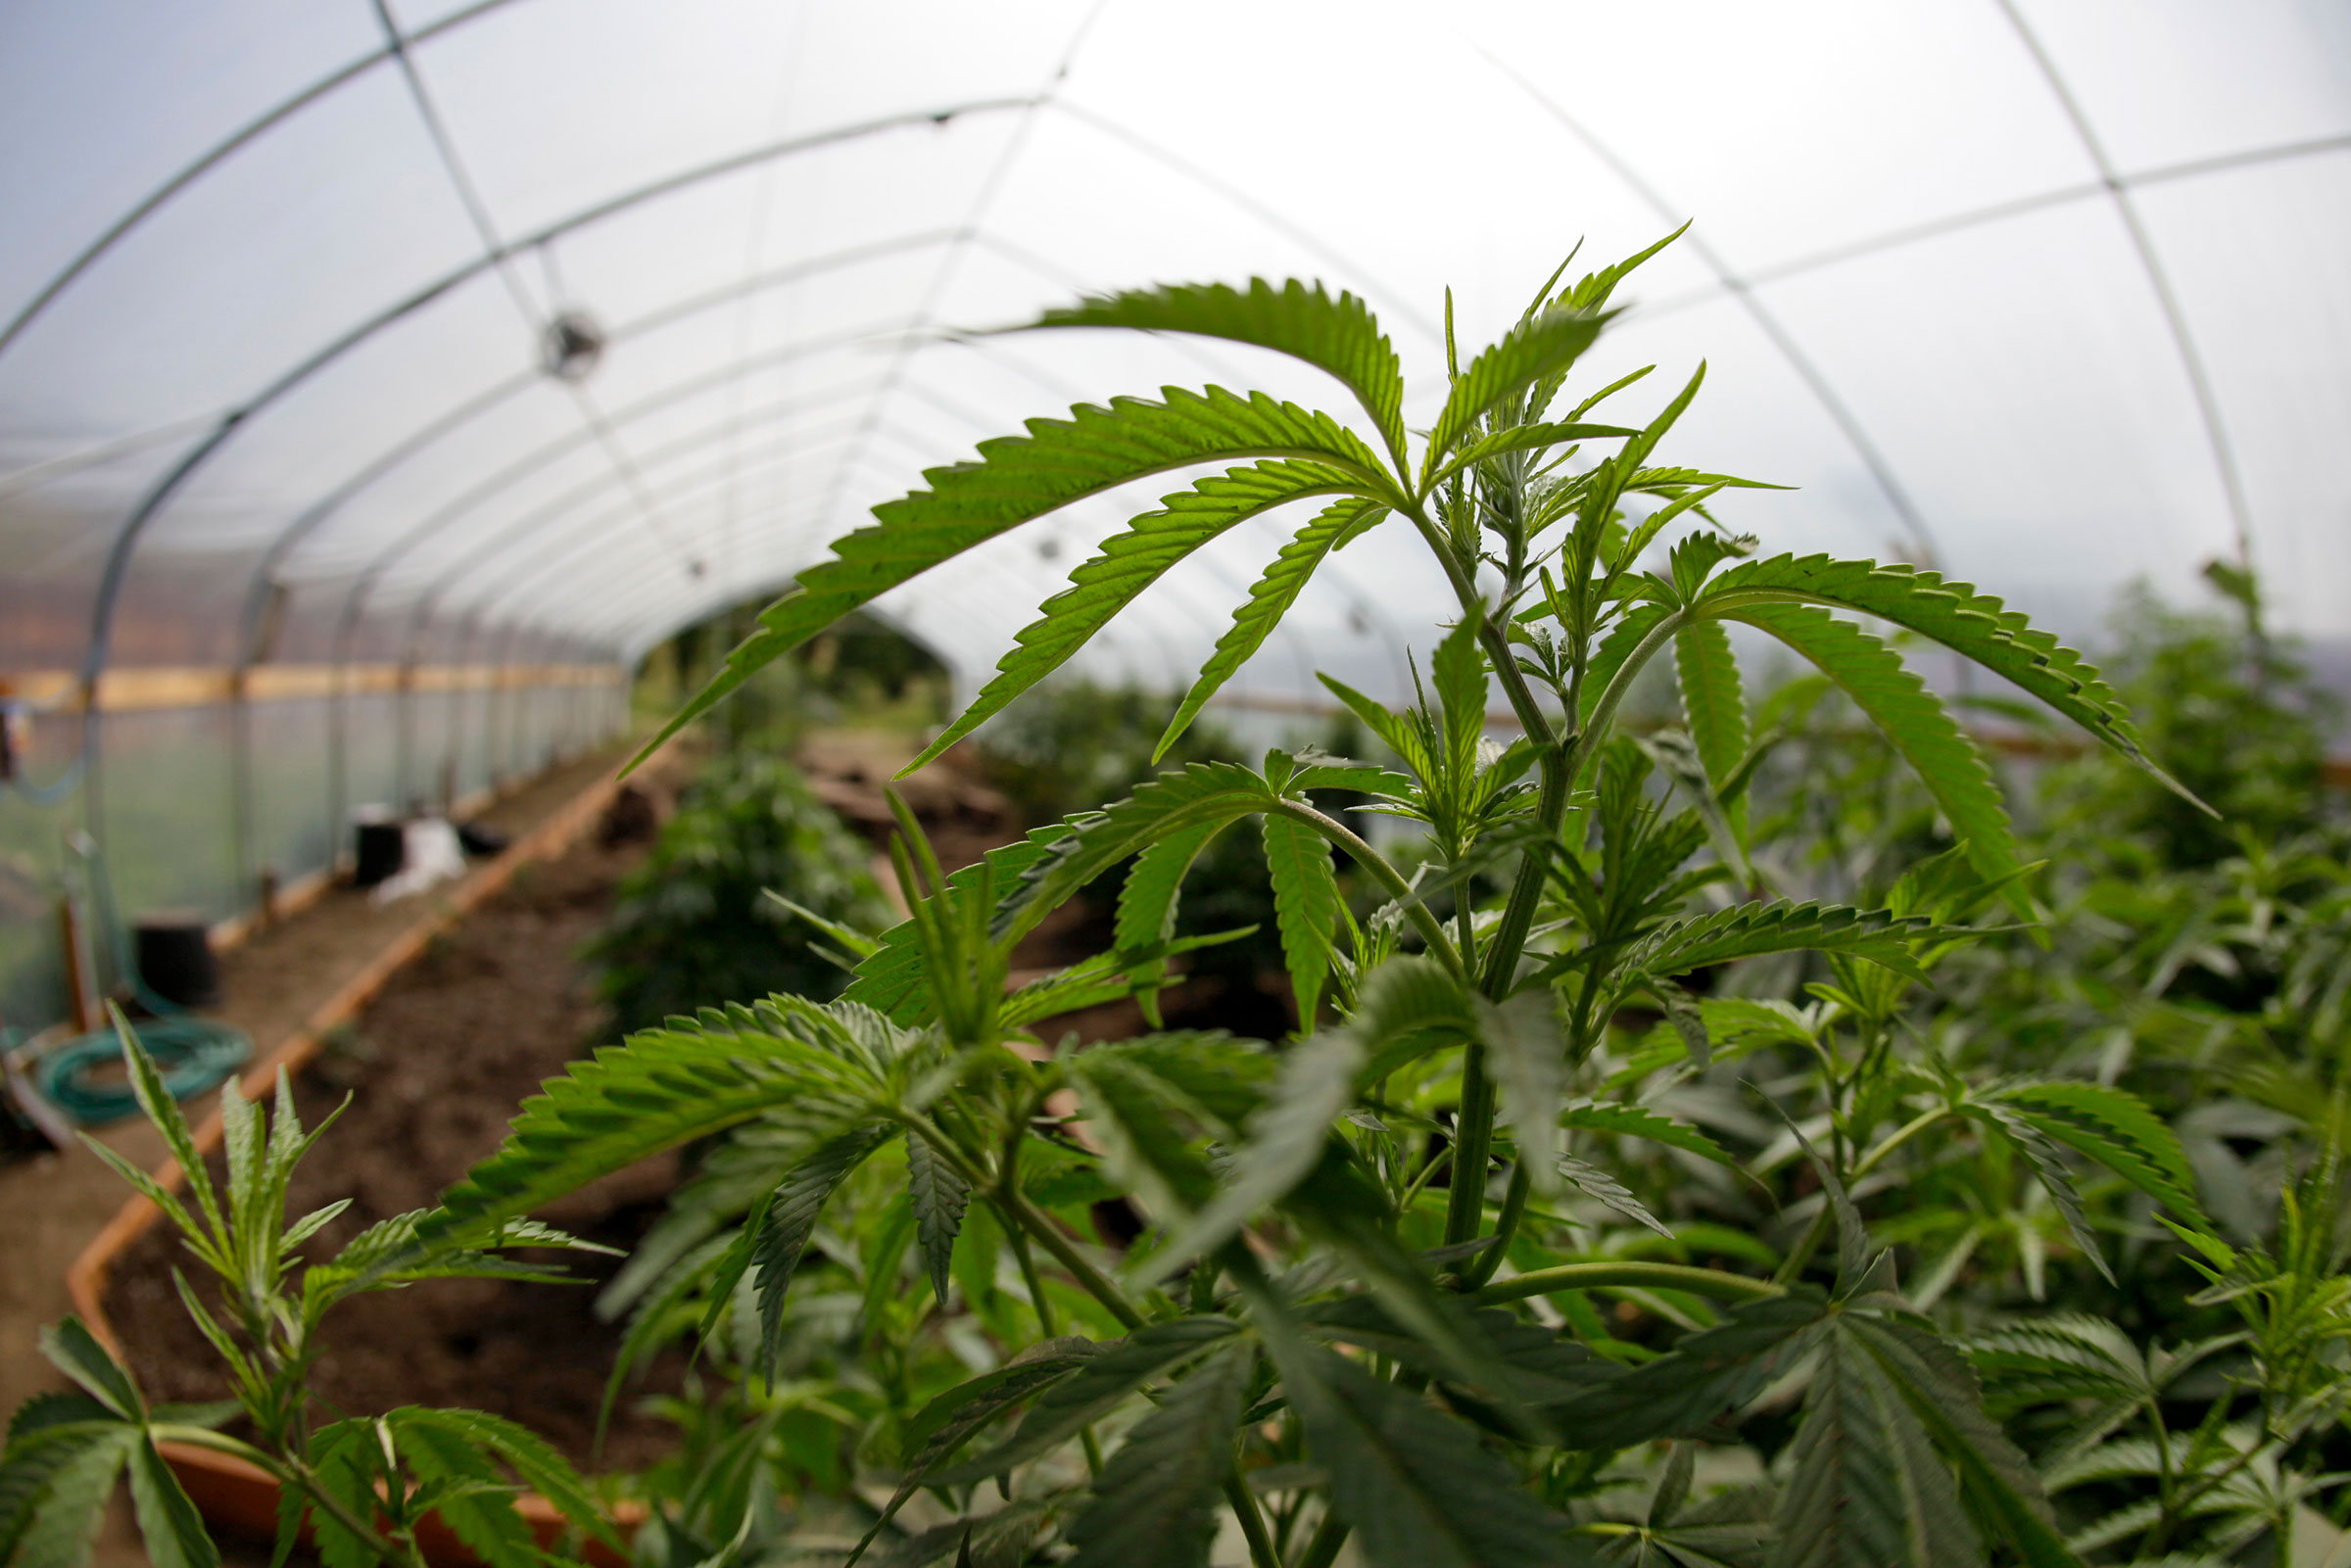 A medically licensed greenhouse in Mendocino County, part of the Emerald Triangle. After decades of growing record amounts of illegal pot, Mendocino, Humboldt, and Trinity will be an interesting testing ground for Proposition 64. Eric Risberg/AP